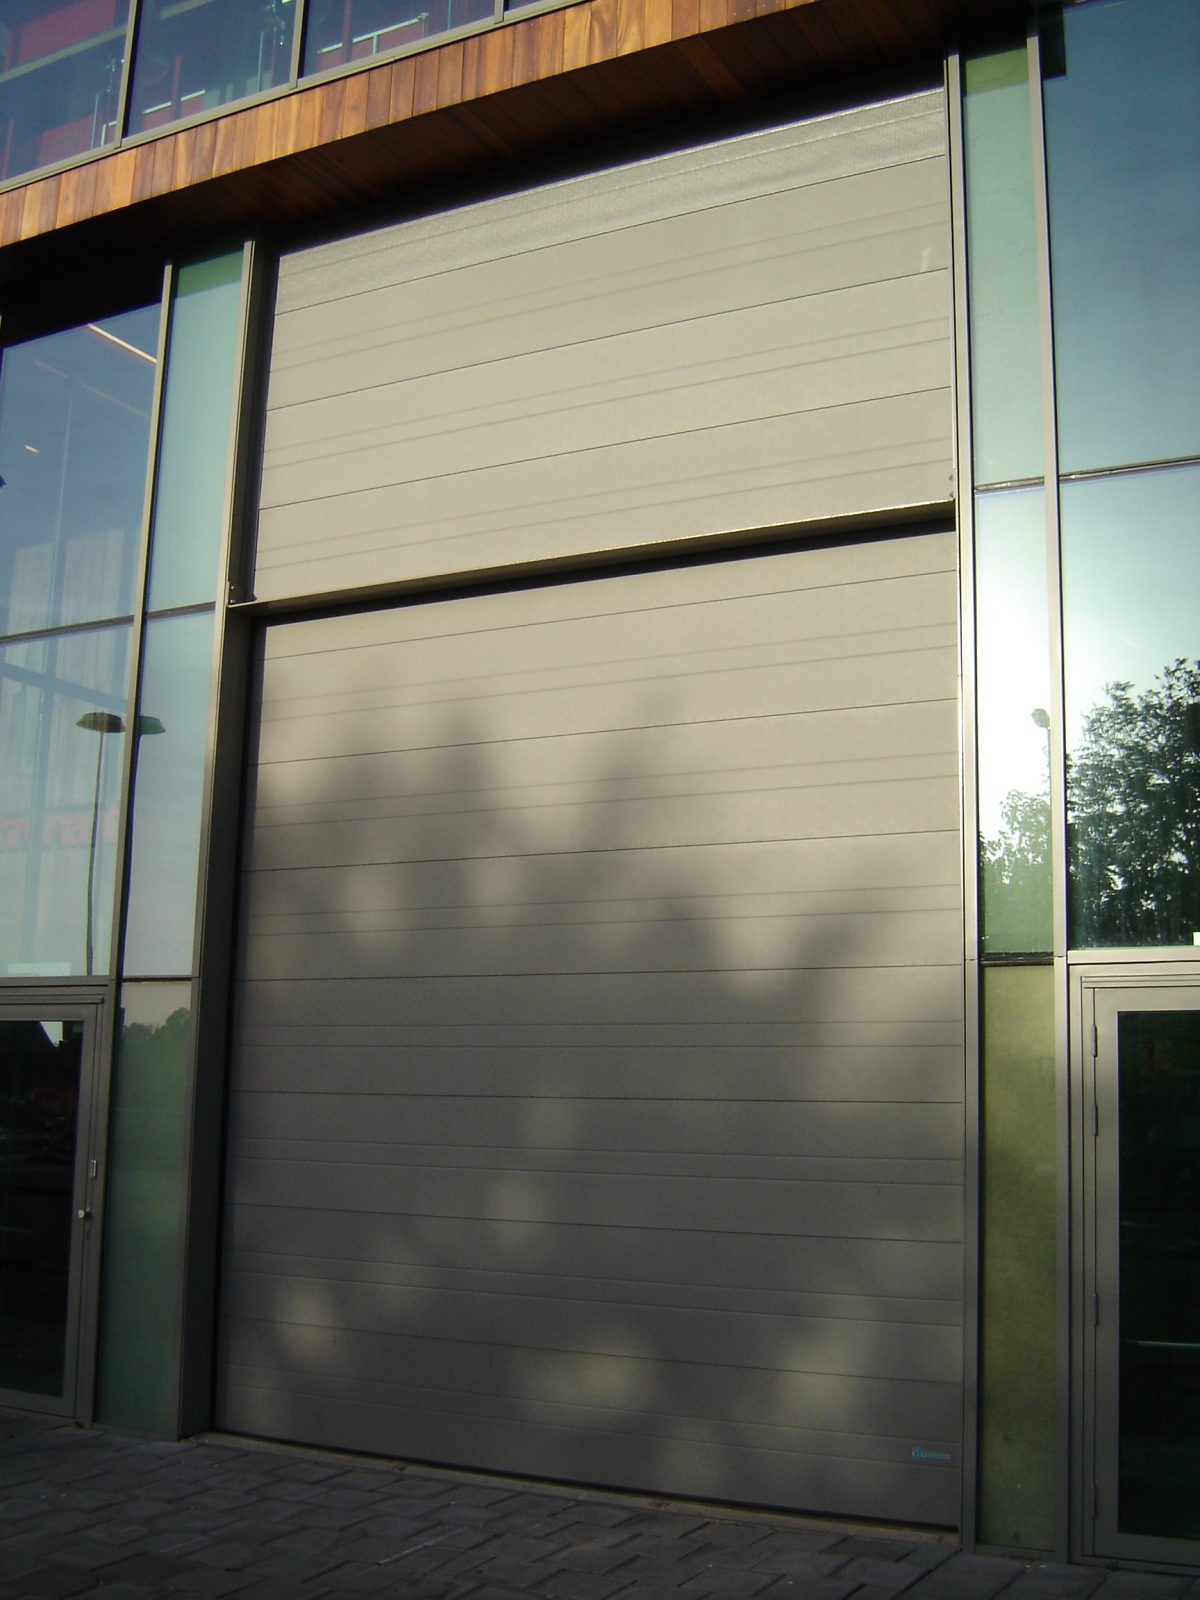 Sectional overheaddoor - Acoustic insulation - Protec Industrial Doors & Theatre Patronaat - sound-insulating doors - Protec Industrial Doors